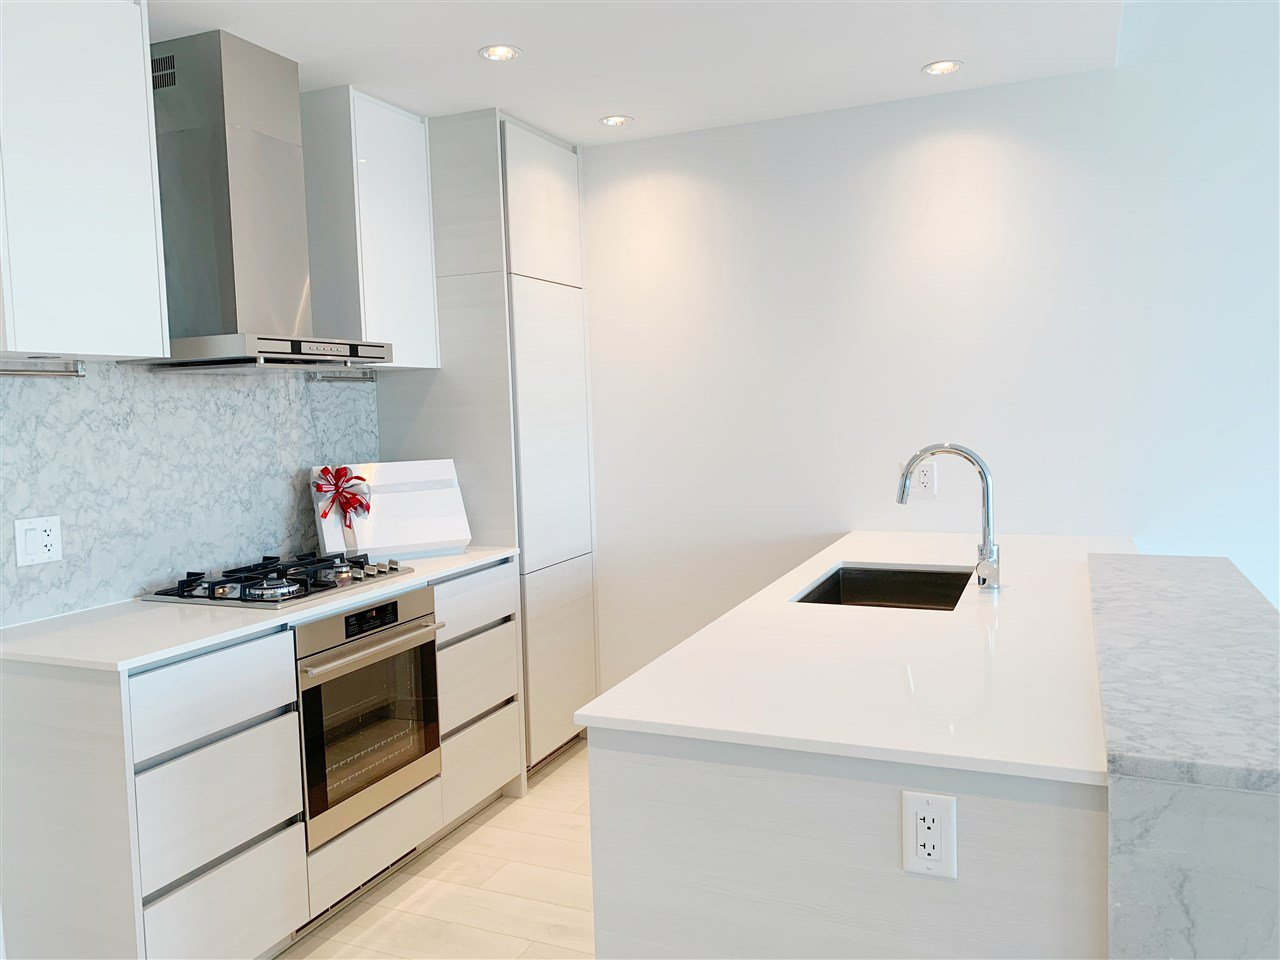 """Main Photo: 4709 4670 ASSEMBLY Way in Burnaby: Metrotown Condo for sale in """"STATION SQUARE 2"""" (Burnaby South)  : MLS®# R2336206"""